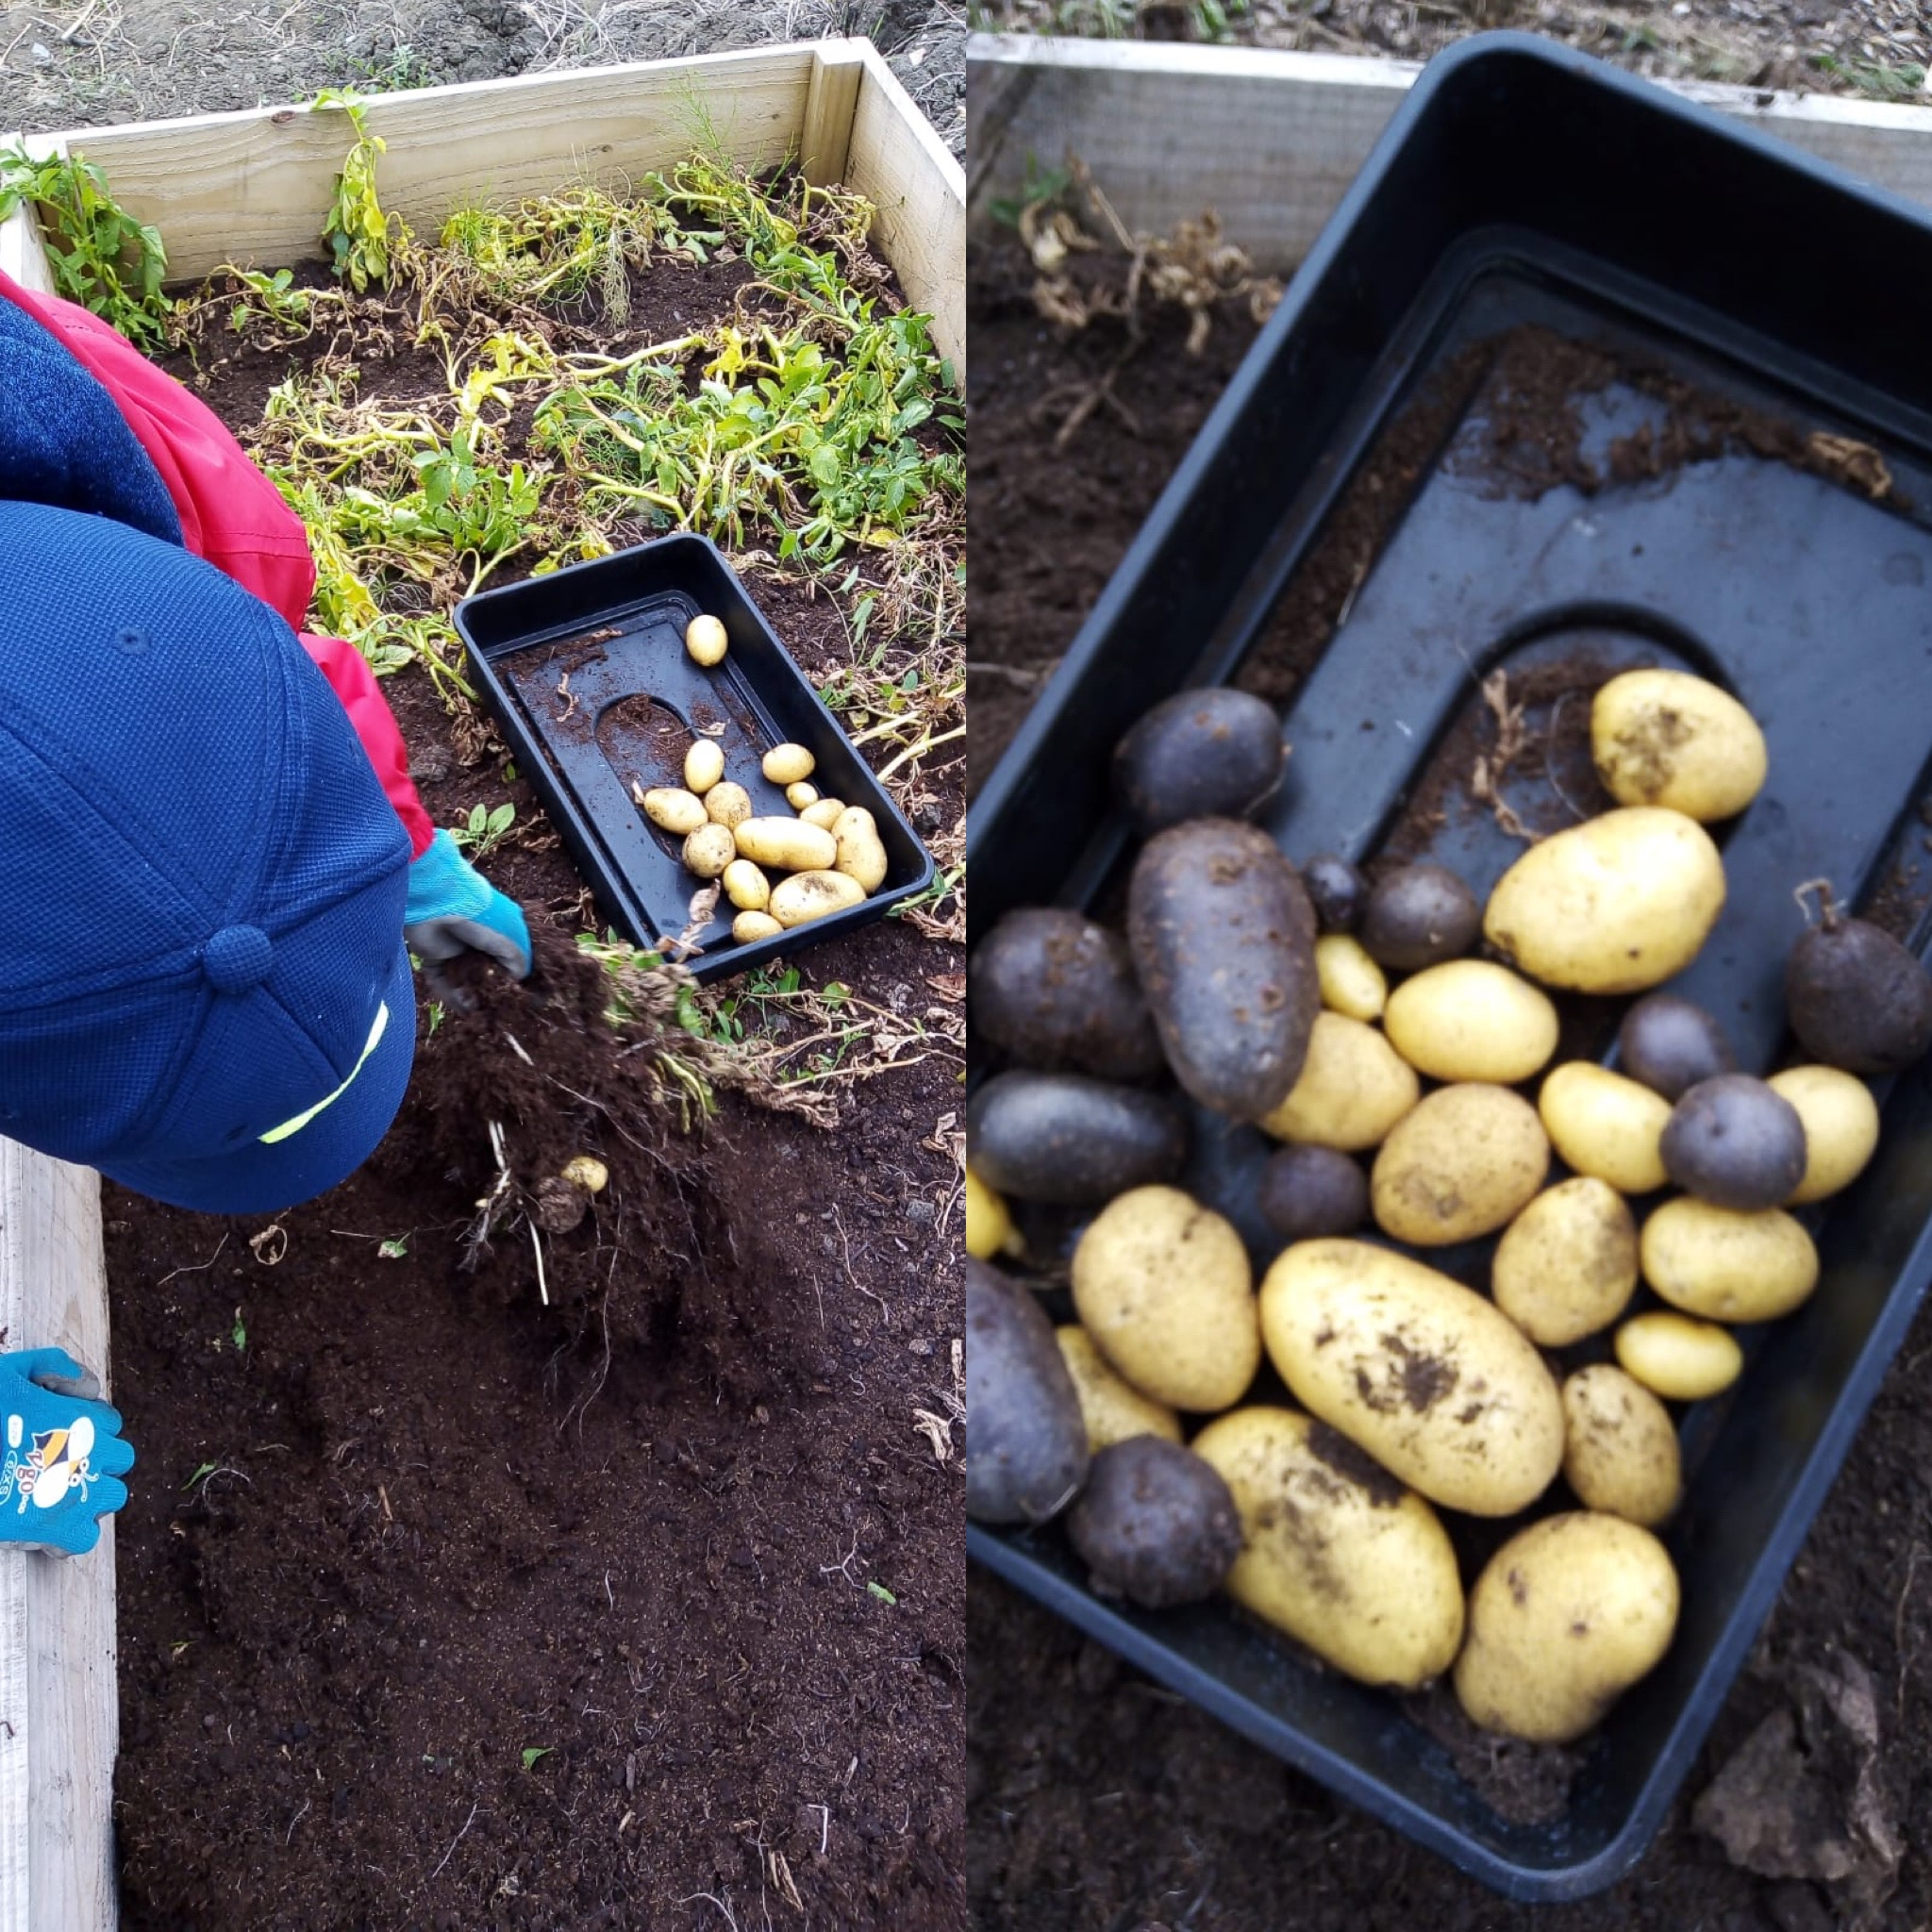 Harvesting white and purple potatoes